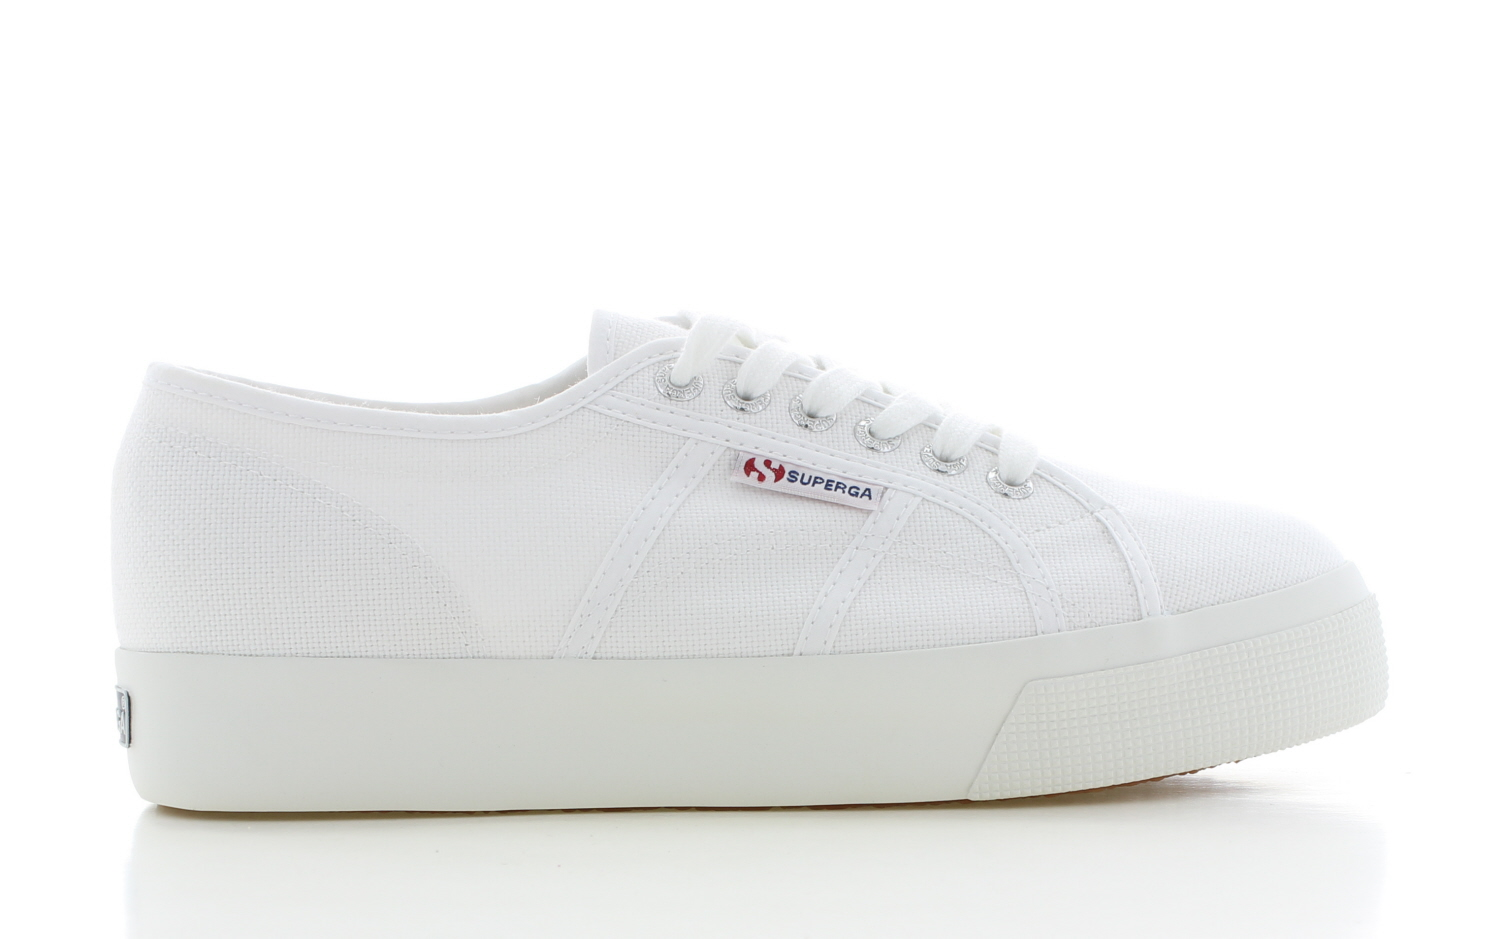 Image of Superga Cotu Mid Sole Wit Dames